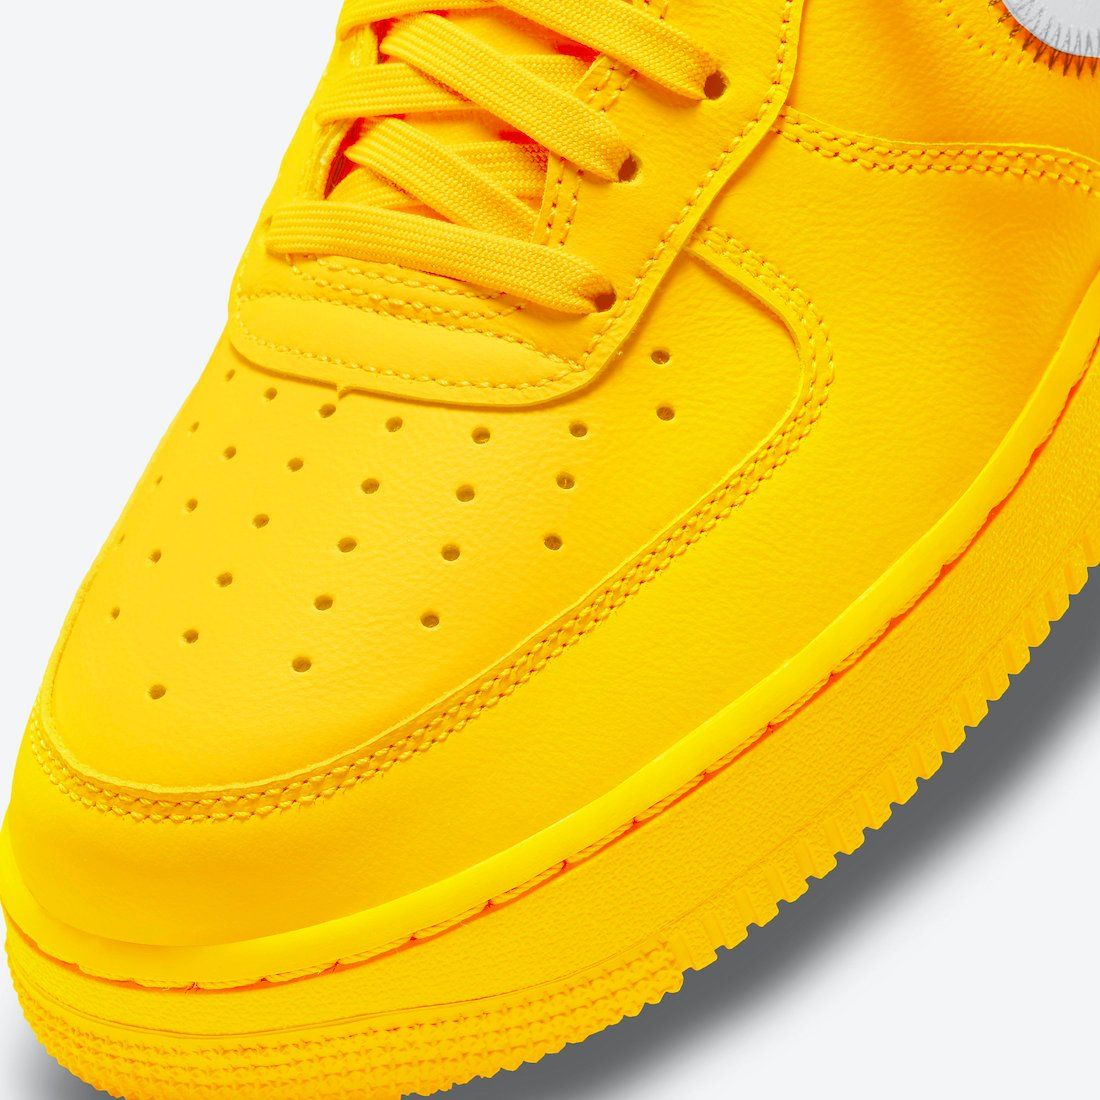 Off-White Nike Air Force 1 Low University Gold DD1876-700 Release Date Price